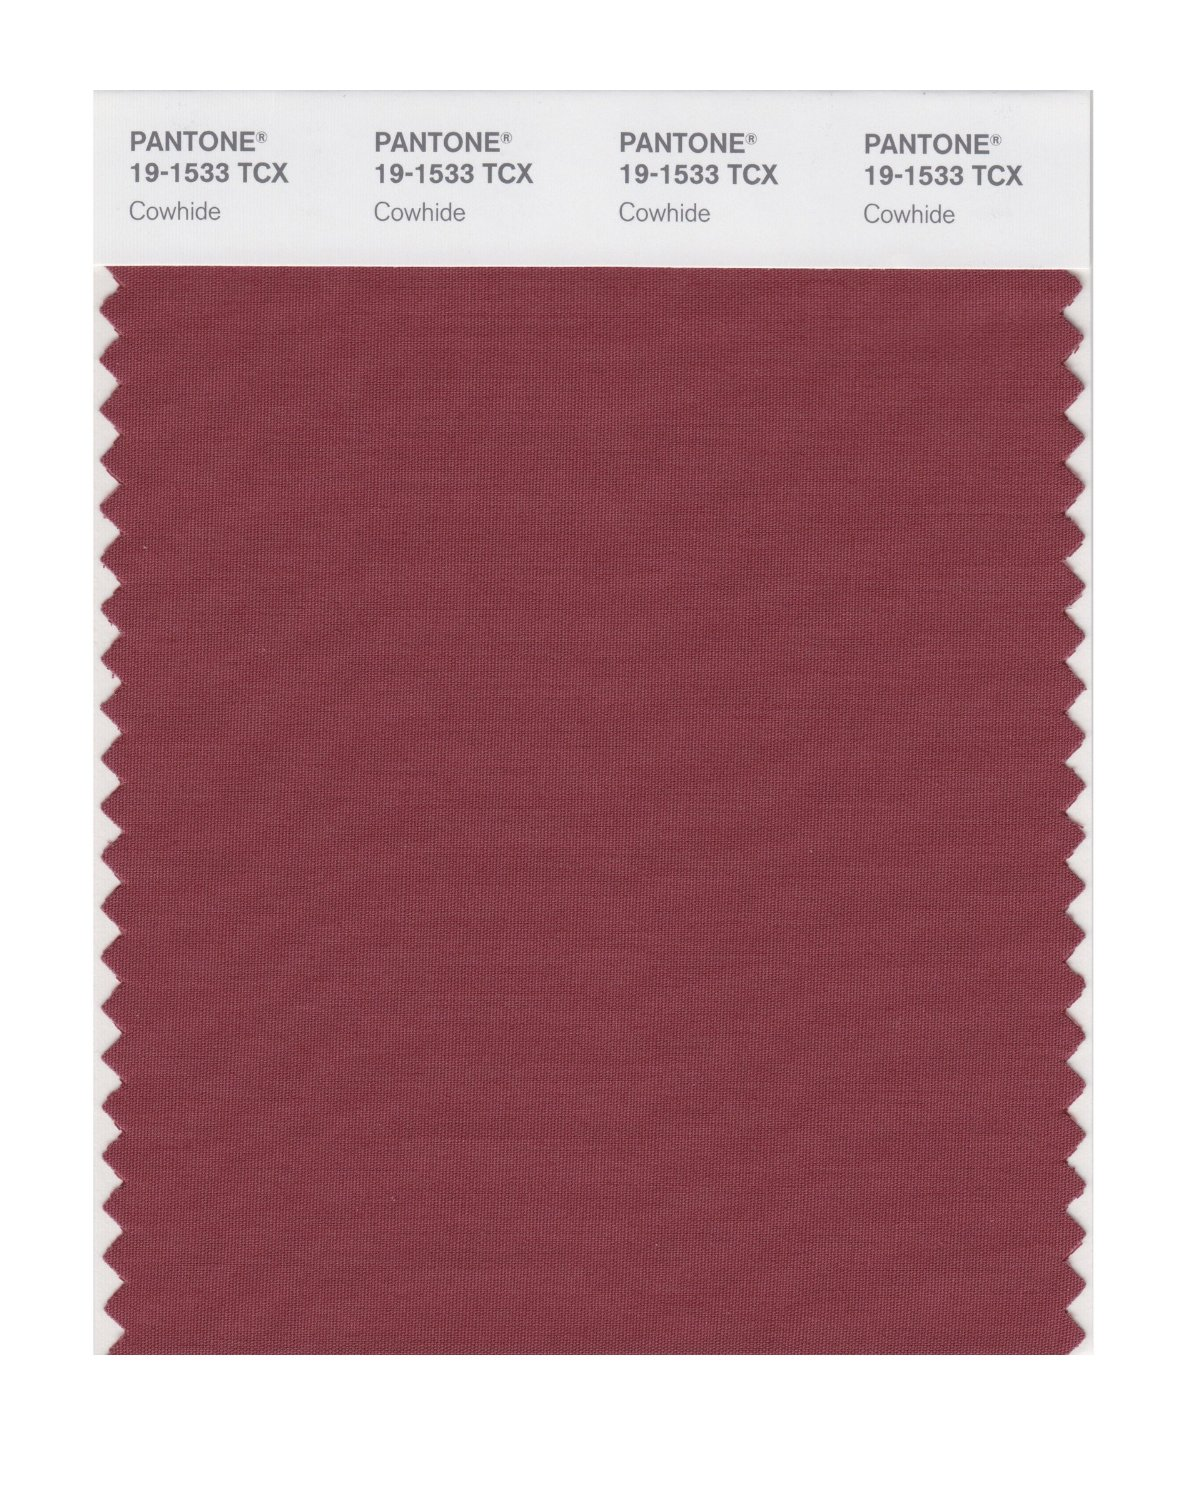 Pantone Smart Swatch 19-1533 Cowhide